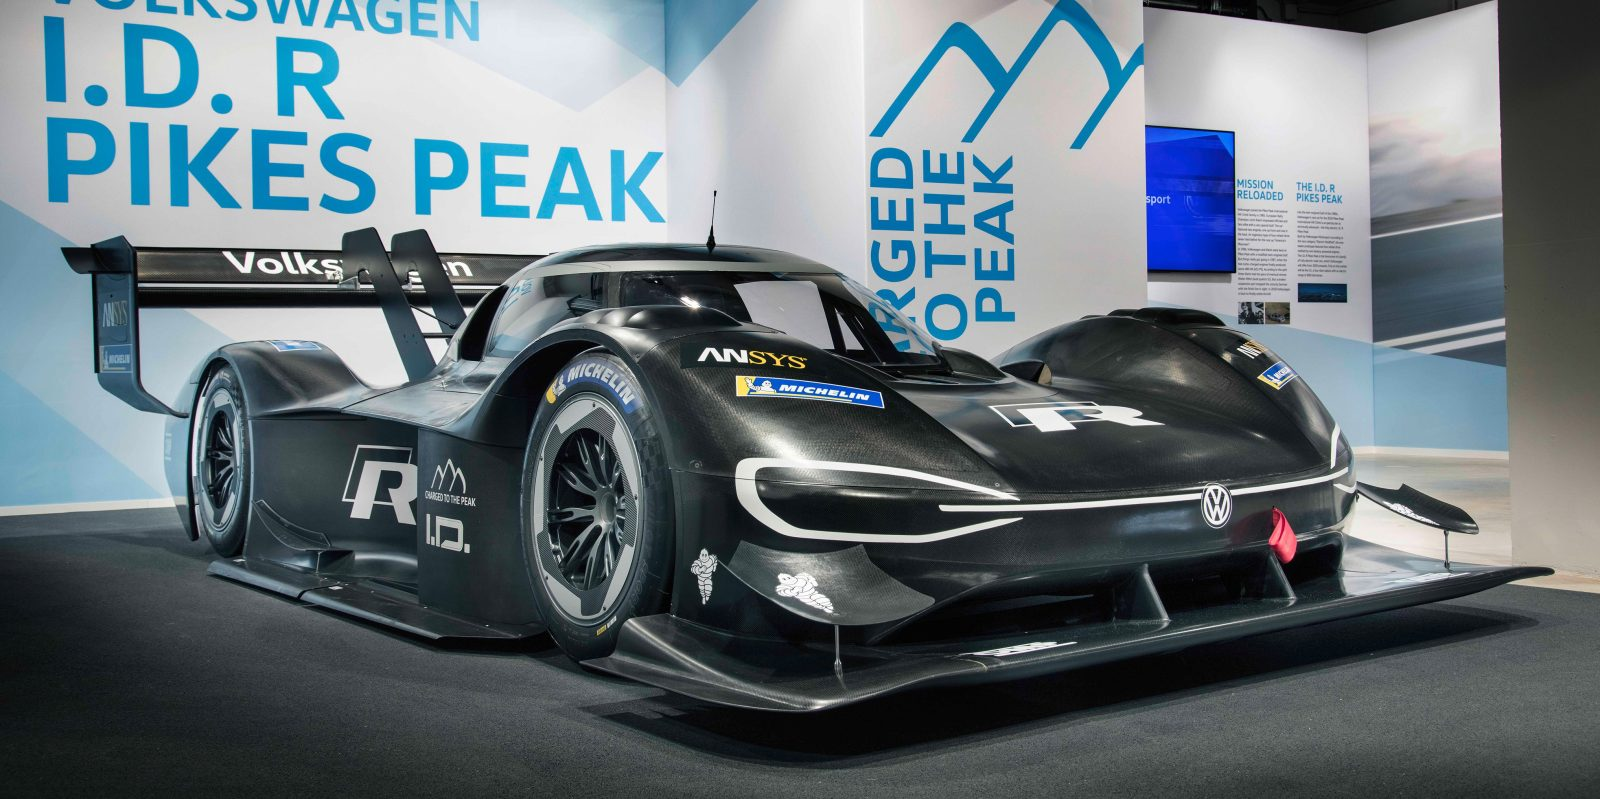 Vw S All Electric Race Car Sets Fastest Time In Pikes Peak Qualifying Round